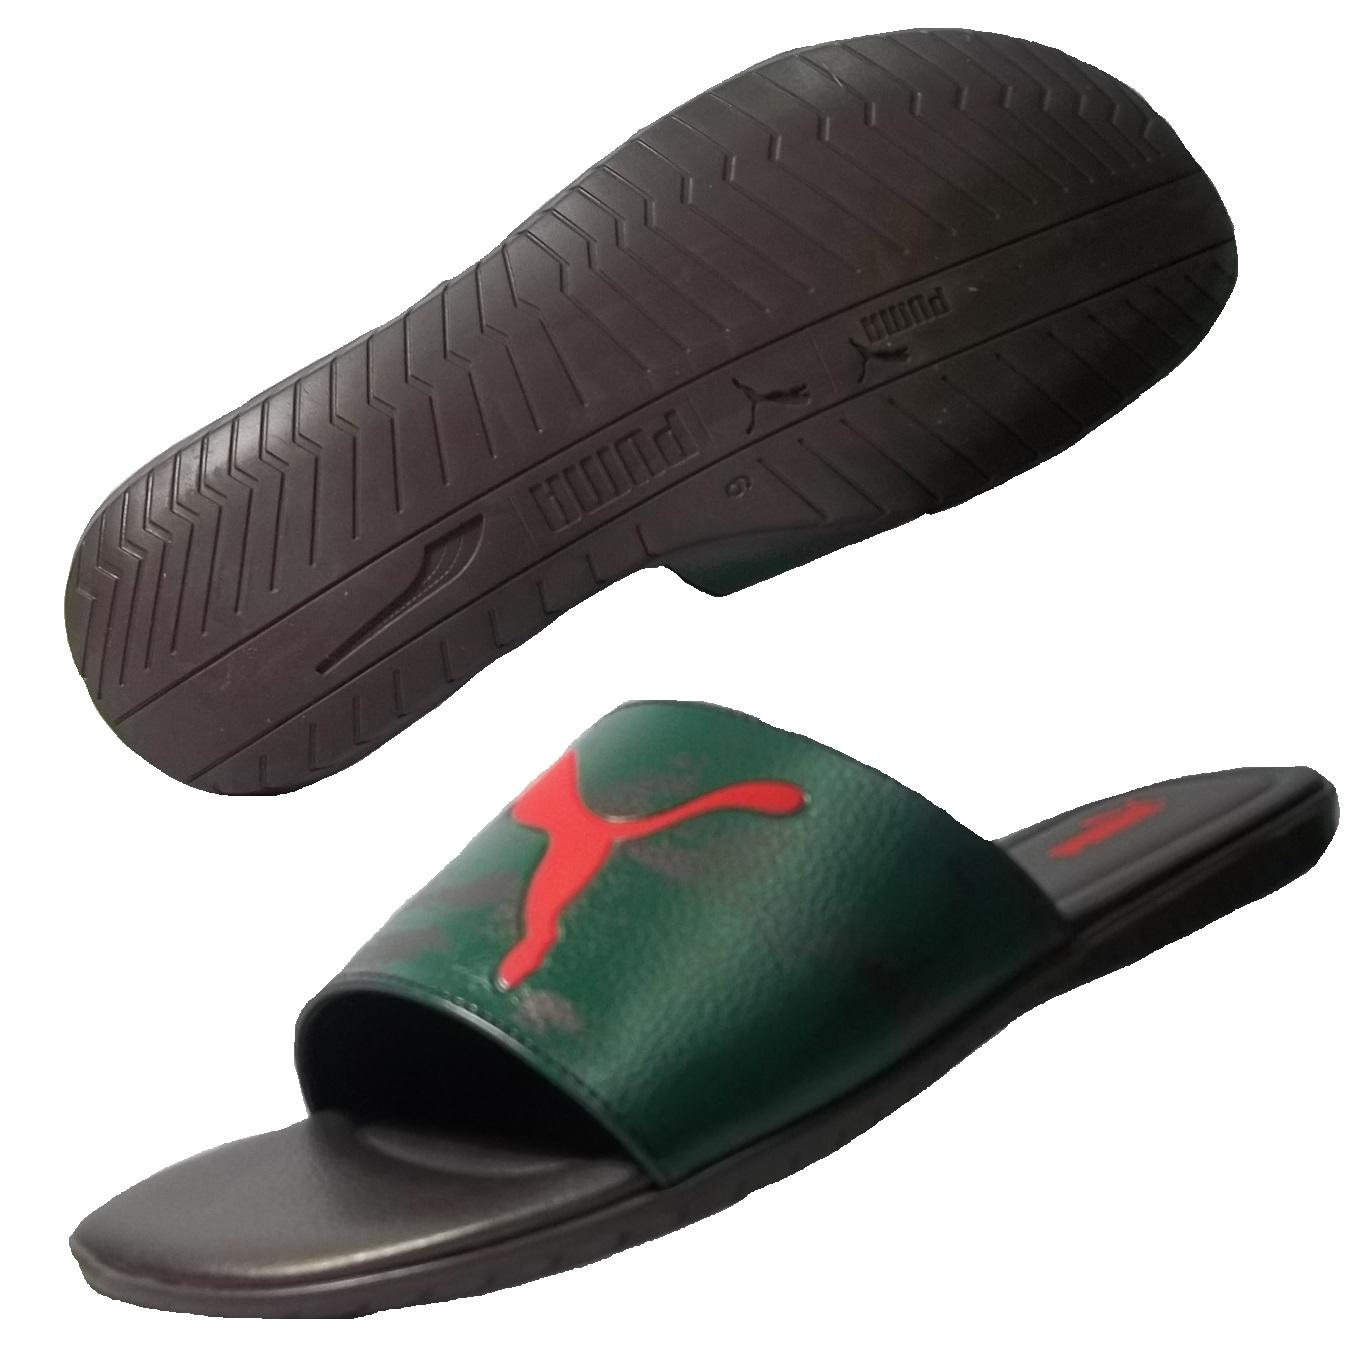 puma slide Keep your feet comfy before and after practice or the big game with the puma popcat sports slides designed with synthetic leather straps, these comfy slides provide traction, thanks to the rugged injected eva outsoles, and display a puma wordmark and cat logo on the straps for a spirited, sporty look.